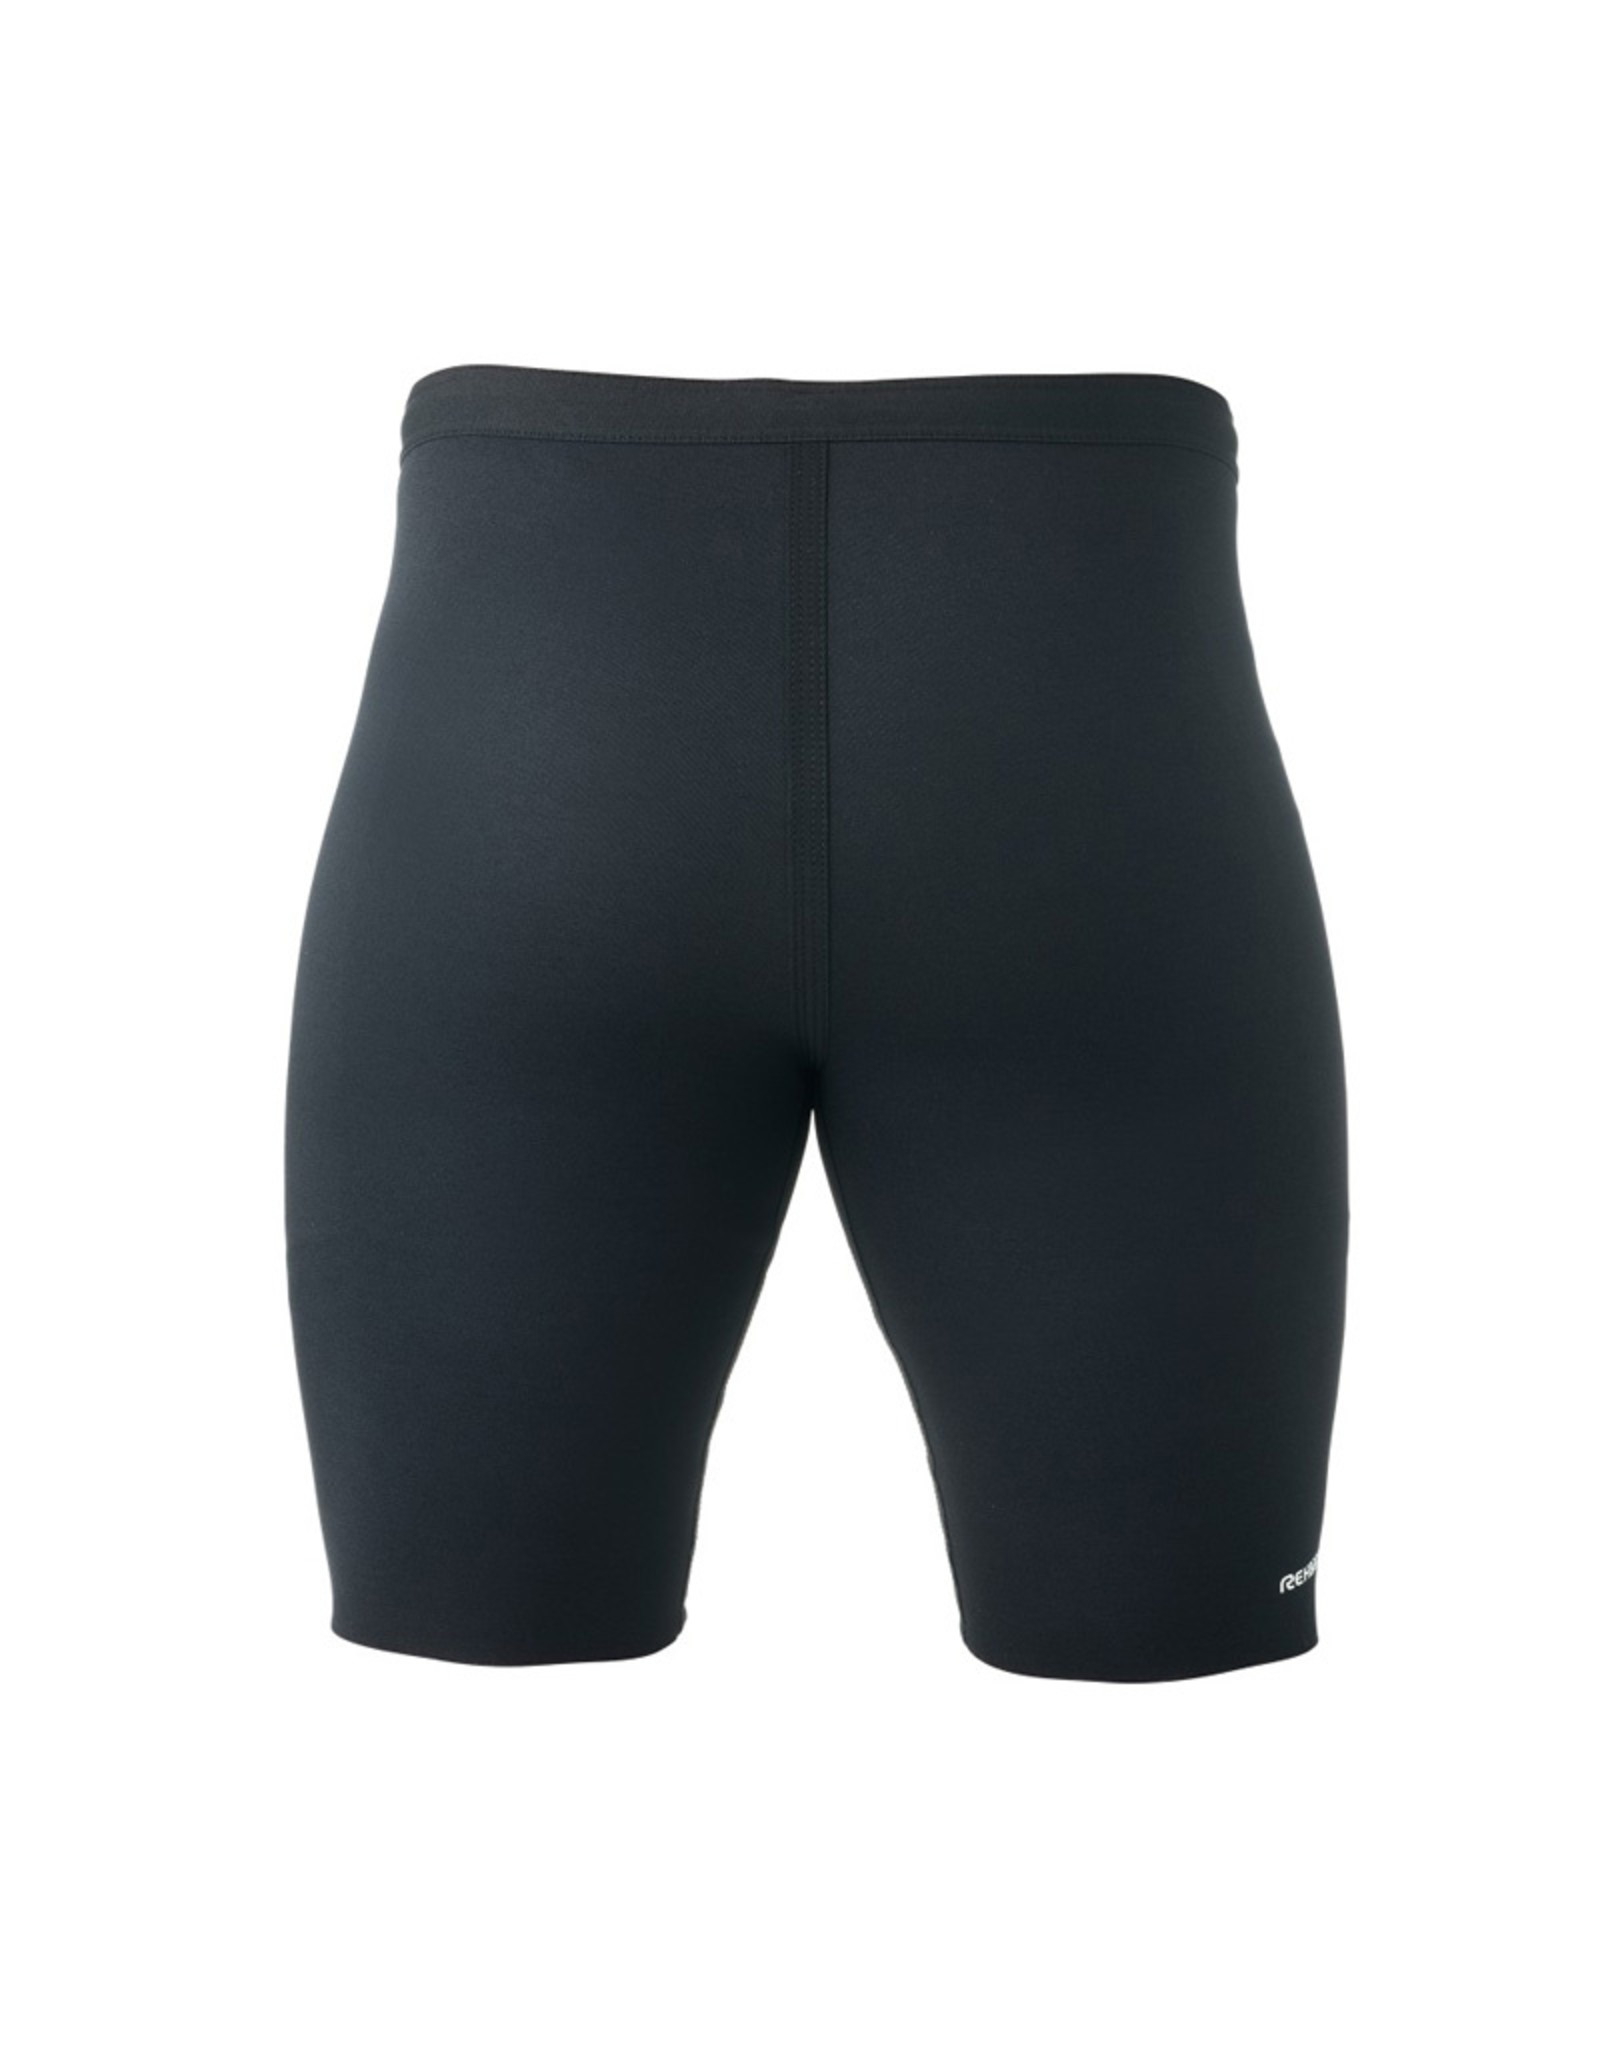 Rehband Qd Thermal Shorts 1.5Mm - Zwart